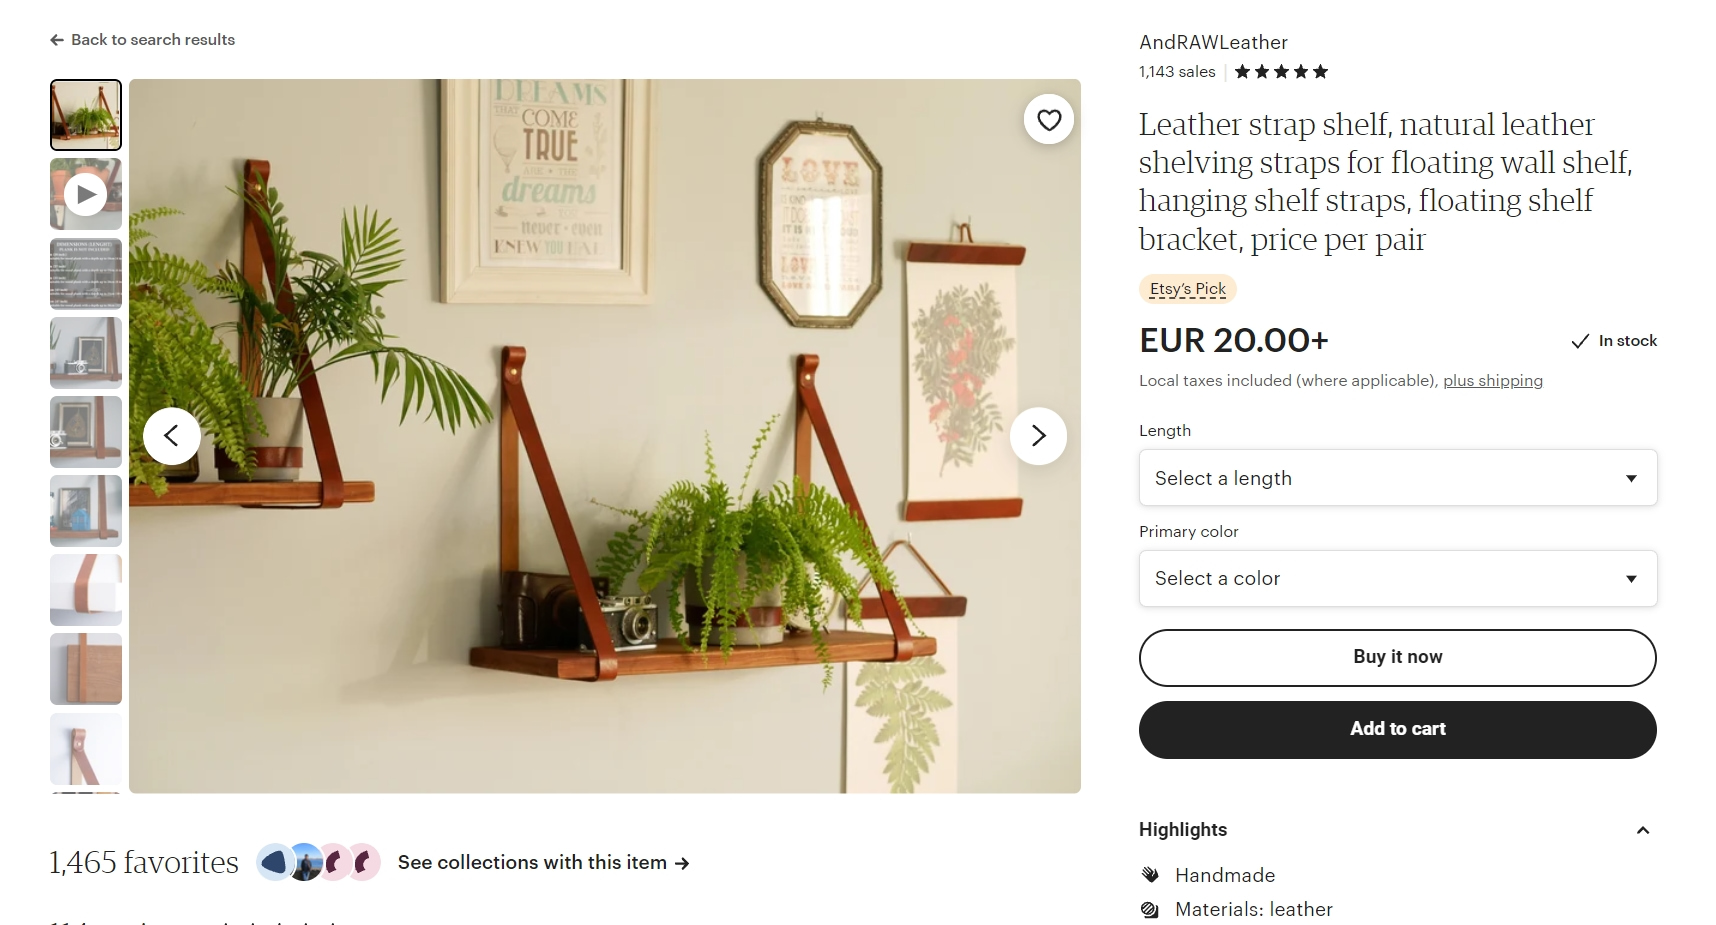 Shopify vs Etsy product pages - Etsy